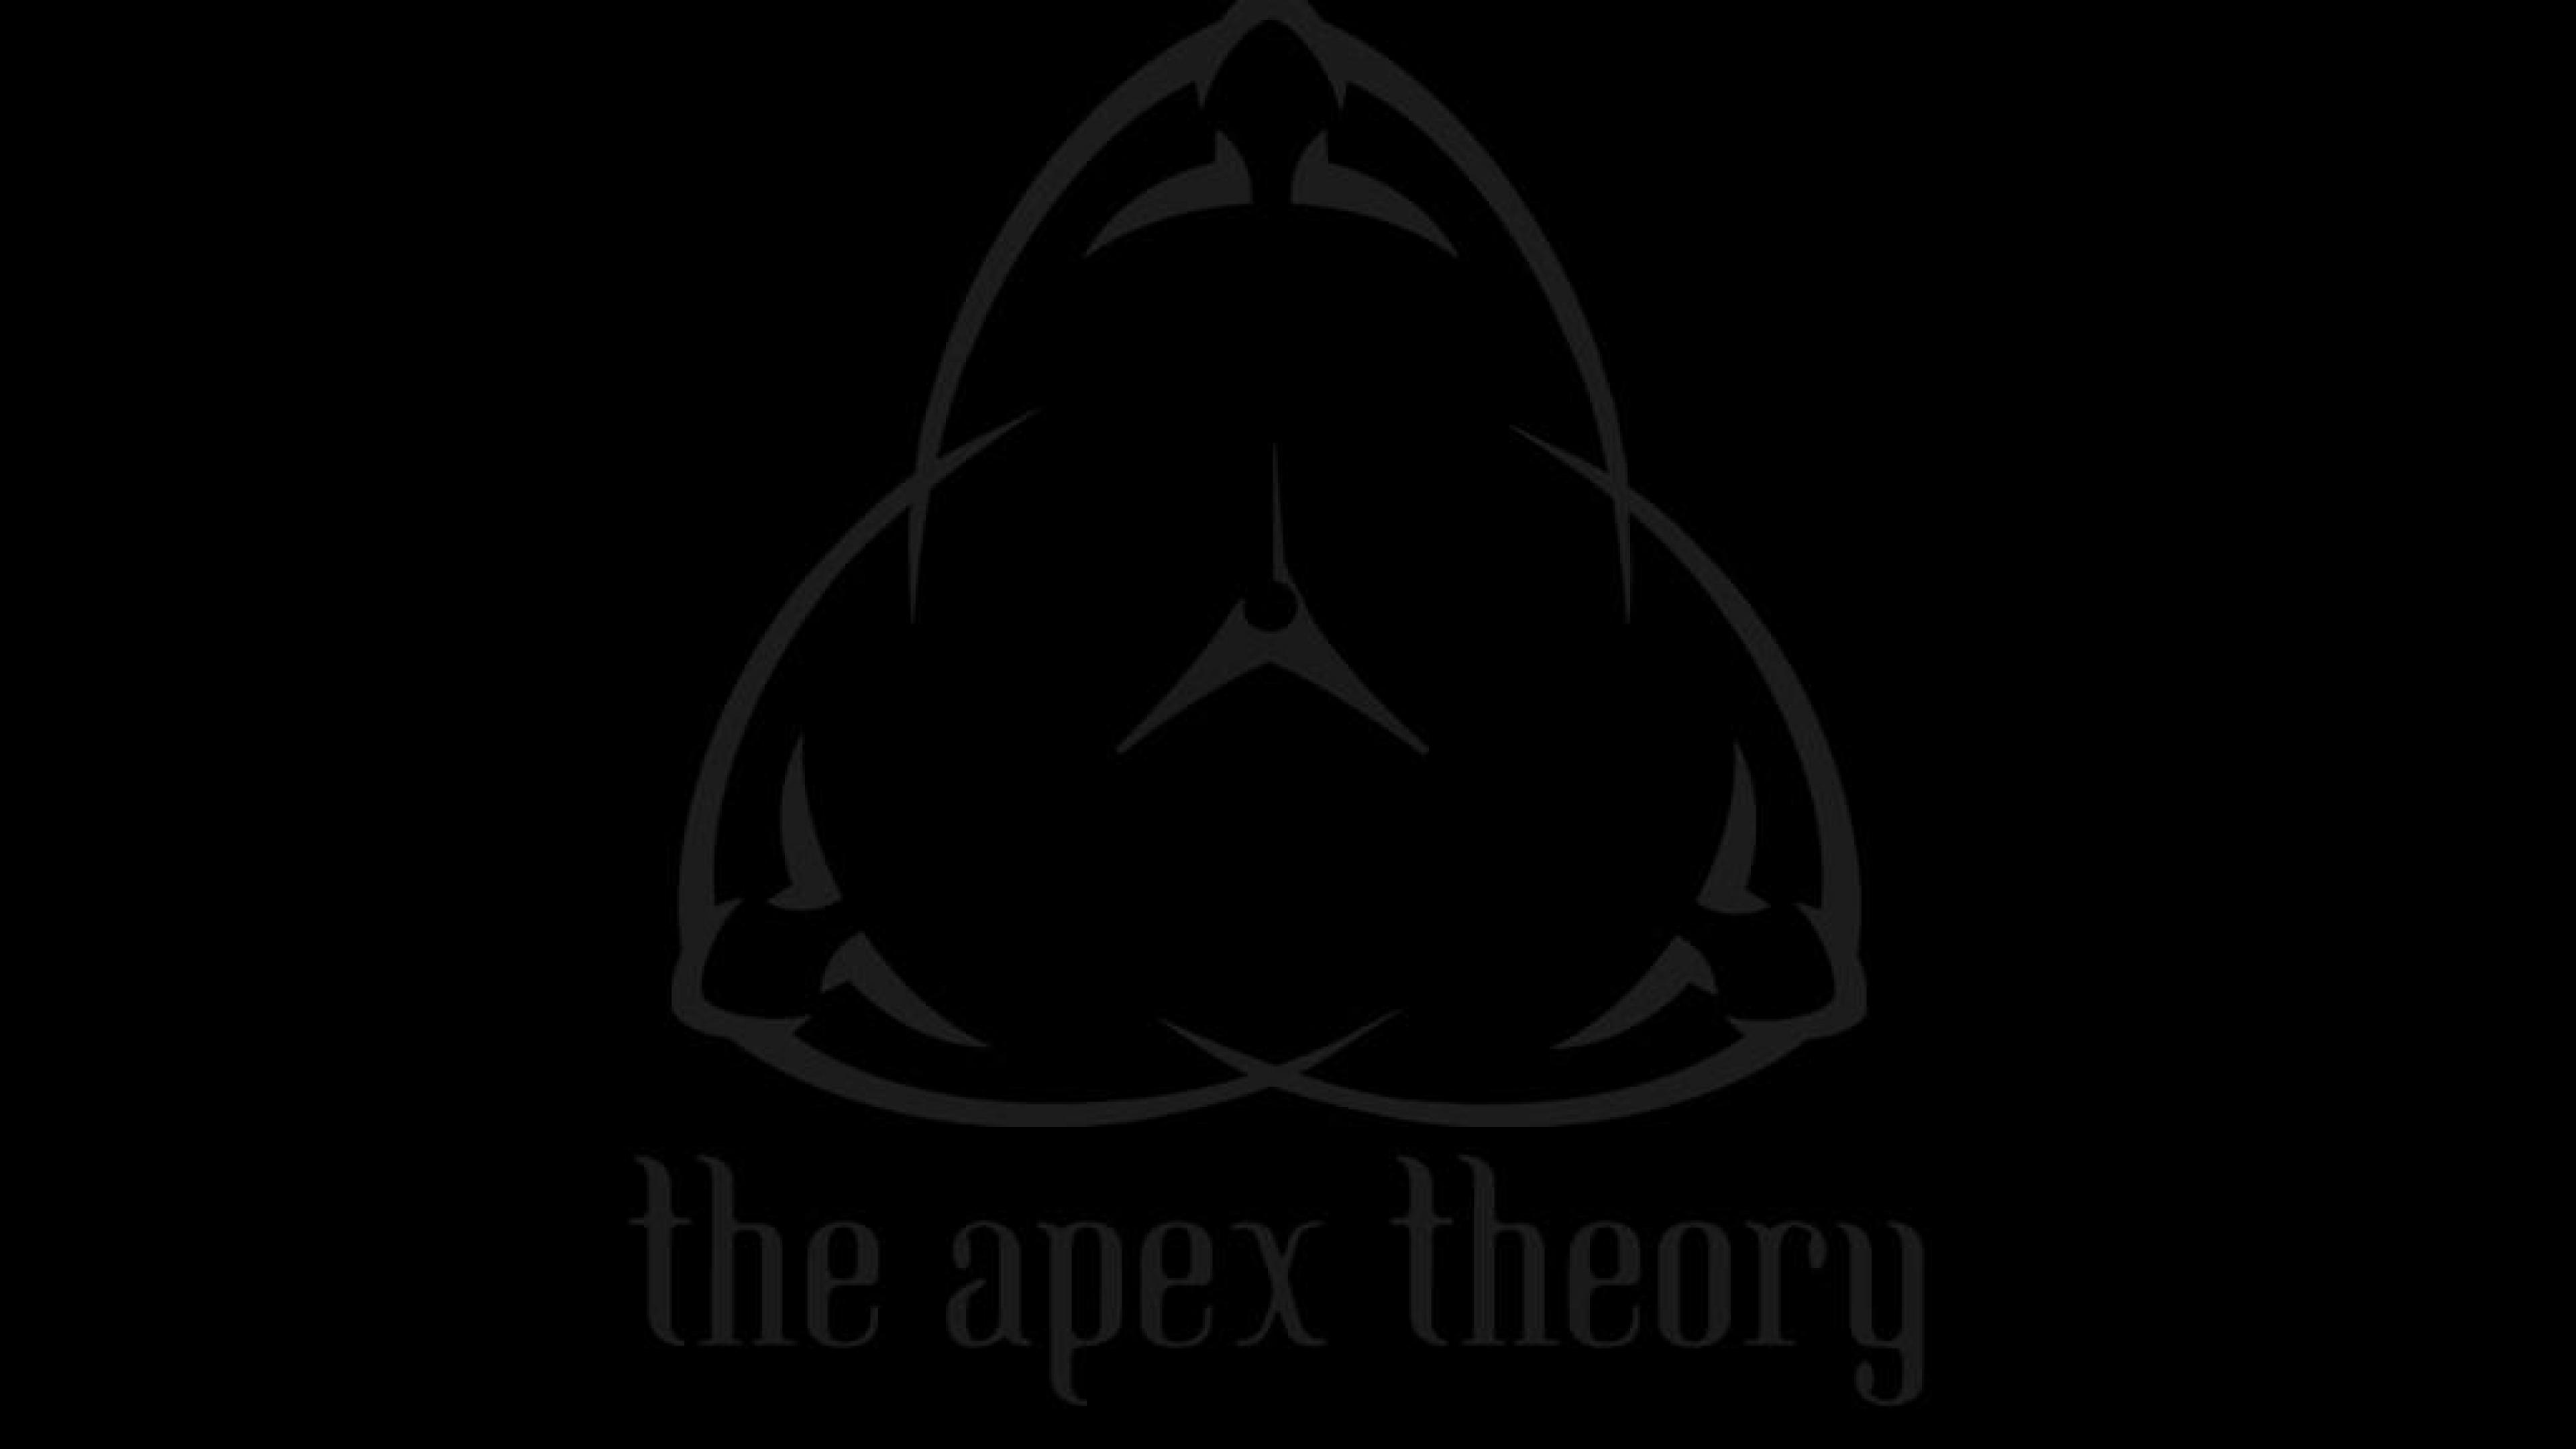 HQ The Apex Theory  Wallpapers | File 165.8Kb